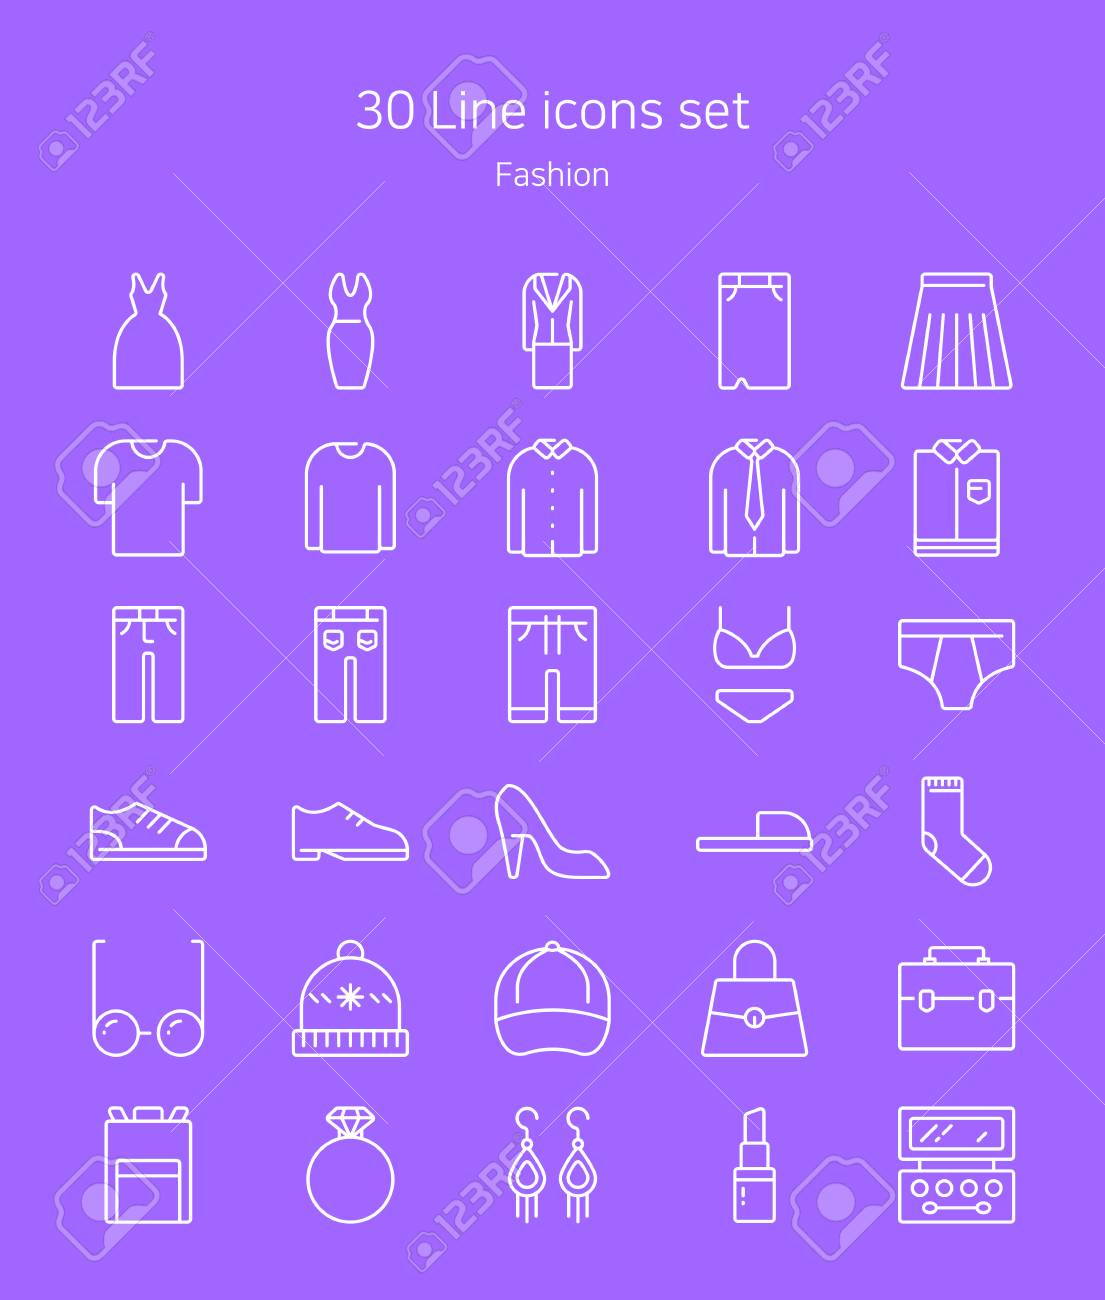 Set Of Flat Icons Line Style Design Elements For Mobile And Royalty Free Cliparts Vectors And Stock Illustration Image 110529098